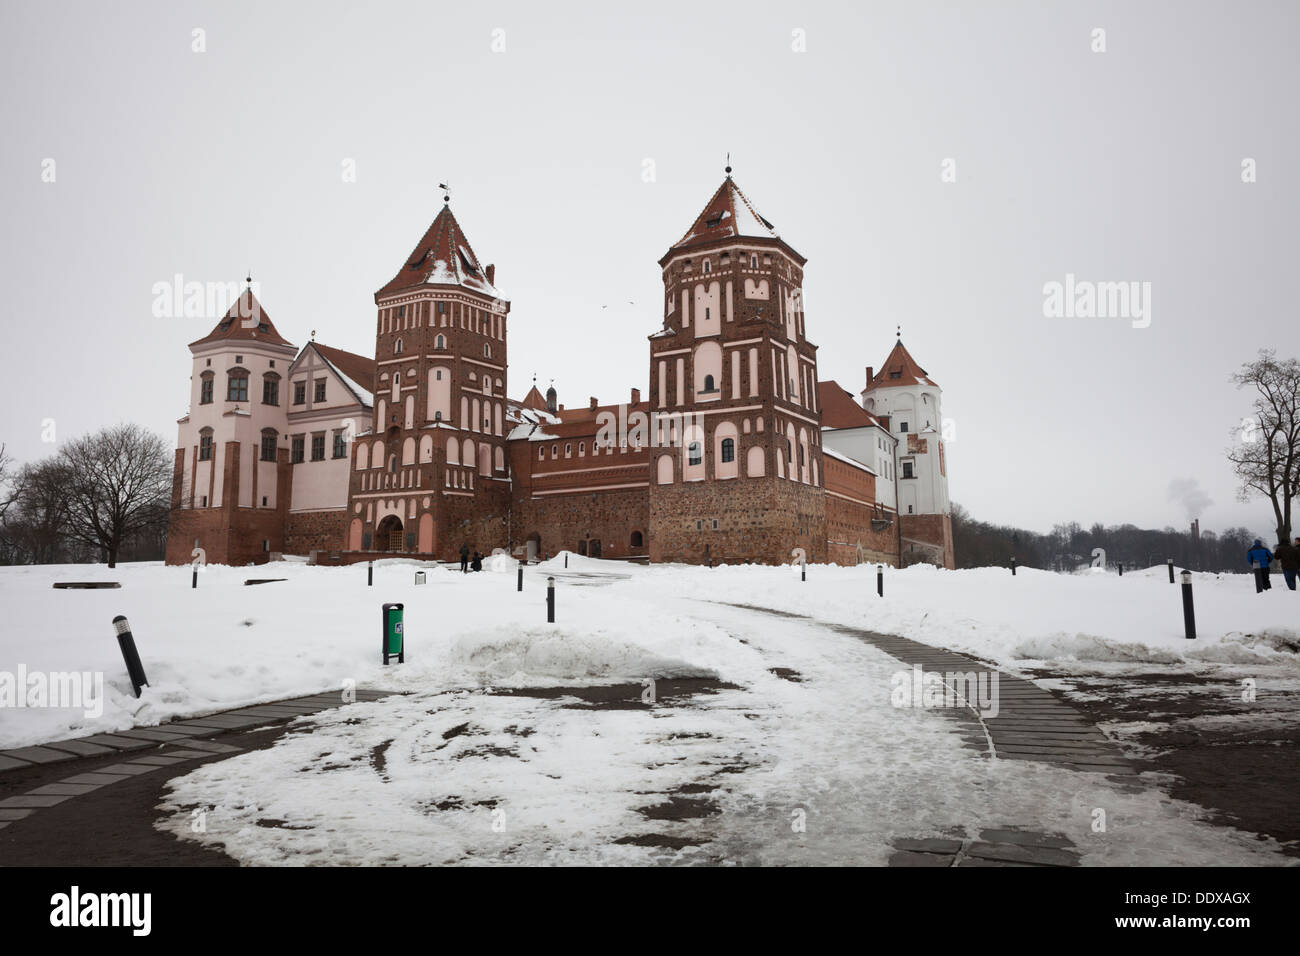 Mir Castle in the district of Hrodna voblast, Belarus - Stock Image